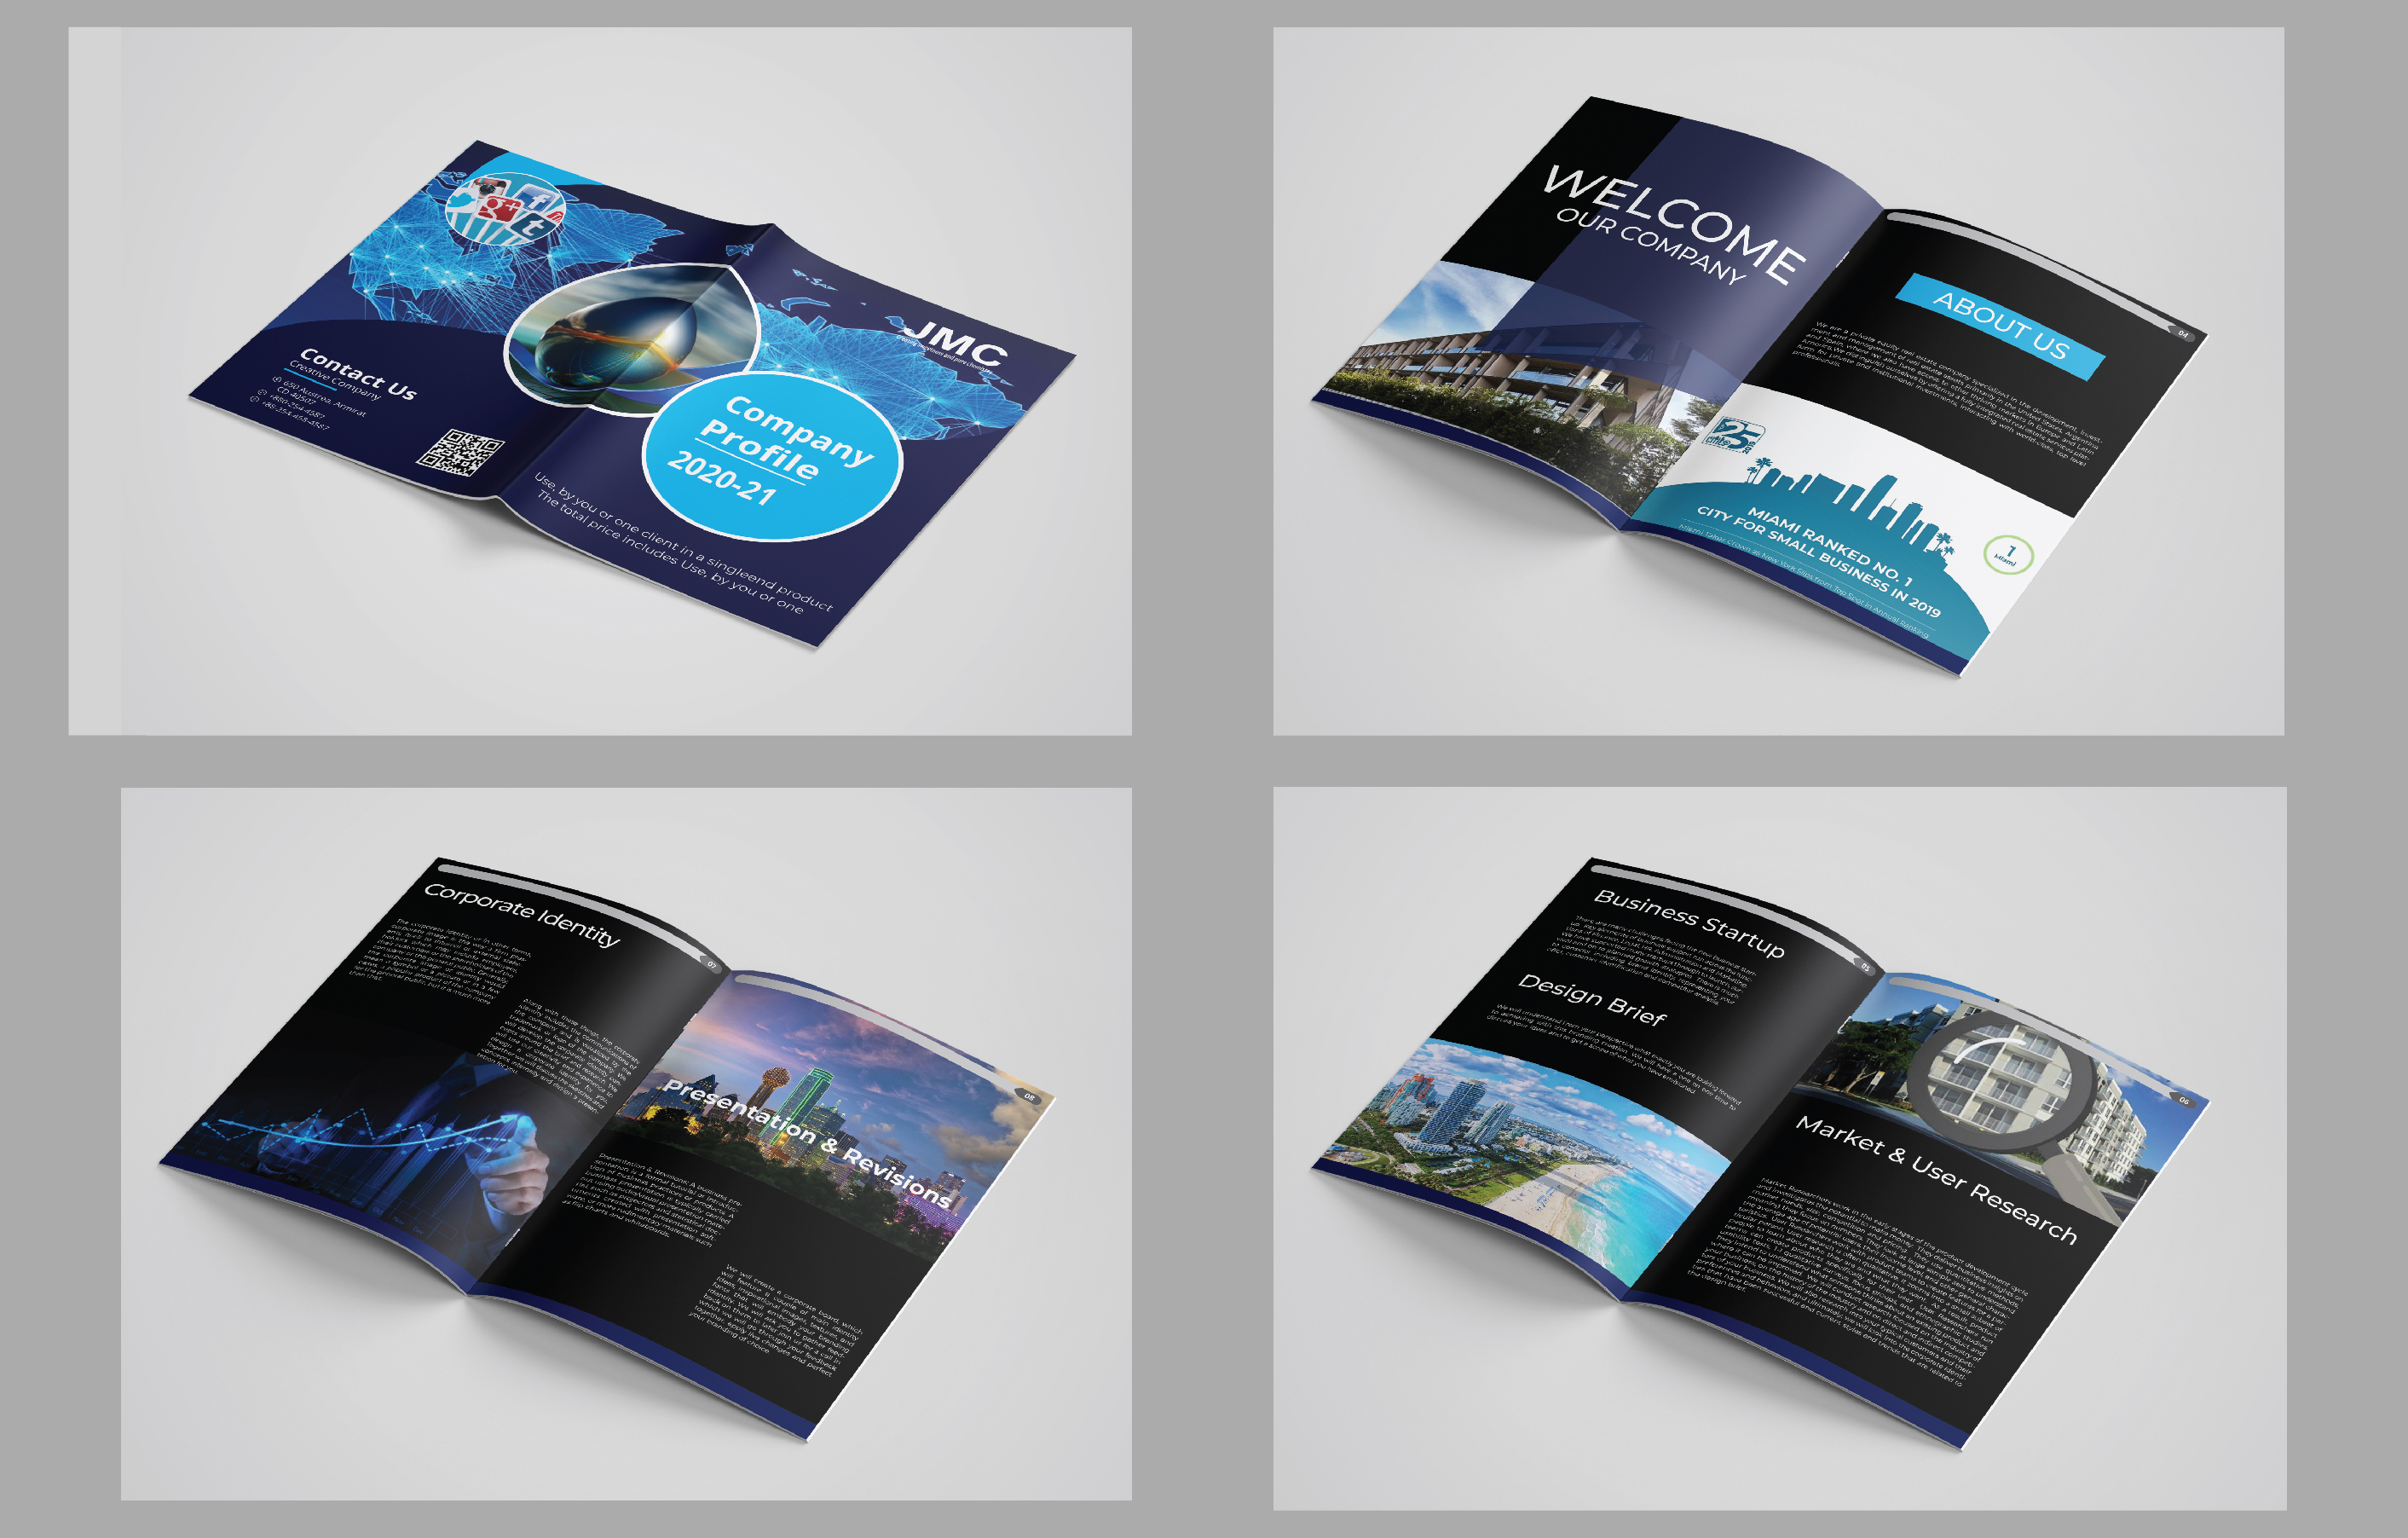 I Will Design Company Brochure or Business Catalog with my creativity.